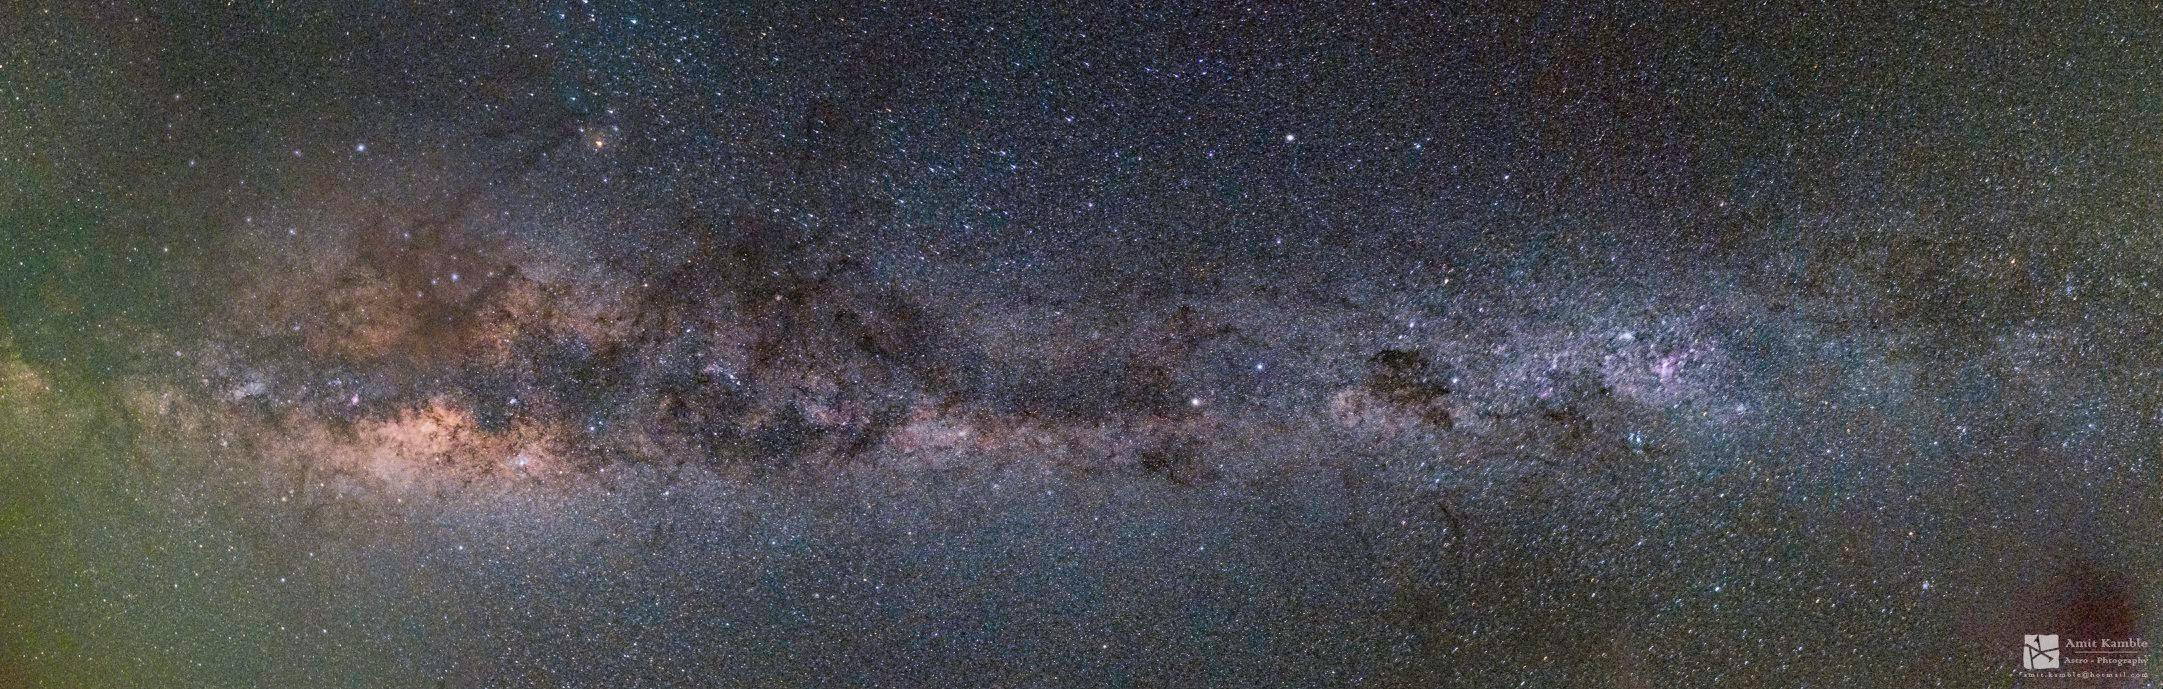 How Many Stars Are in the Milky Way?